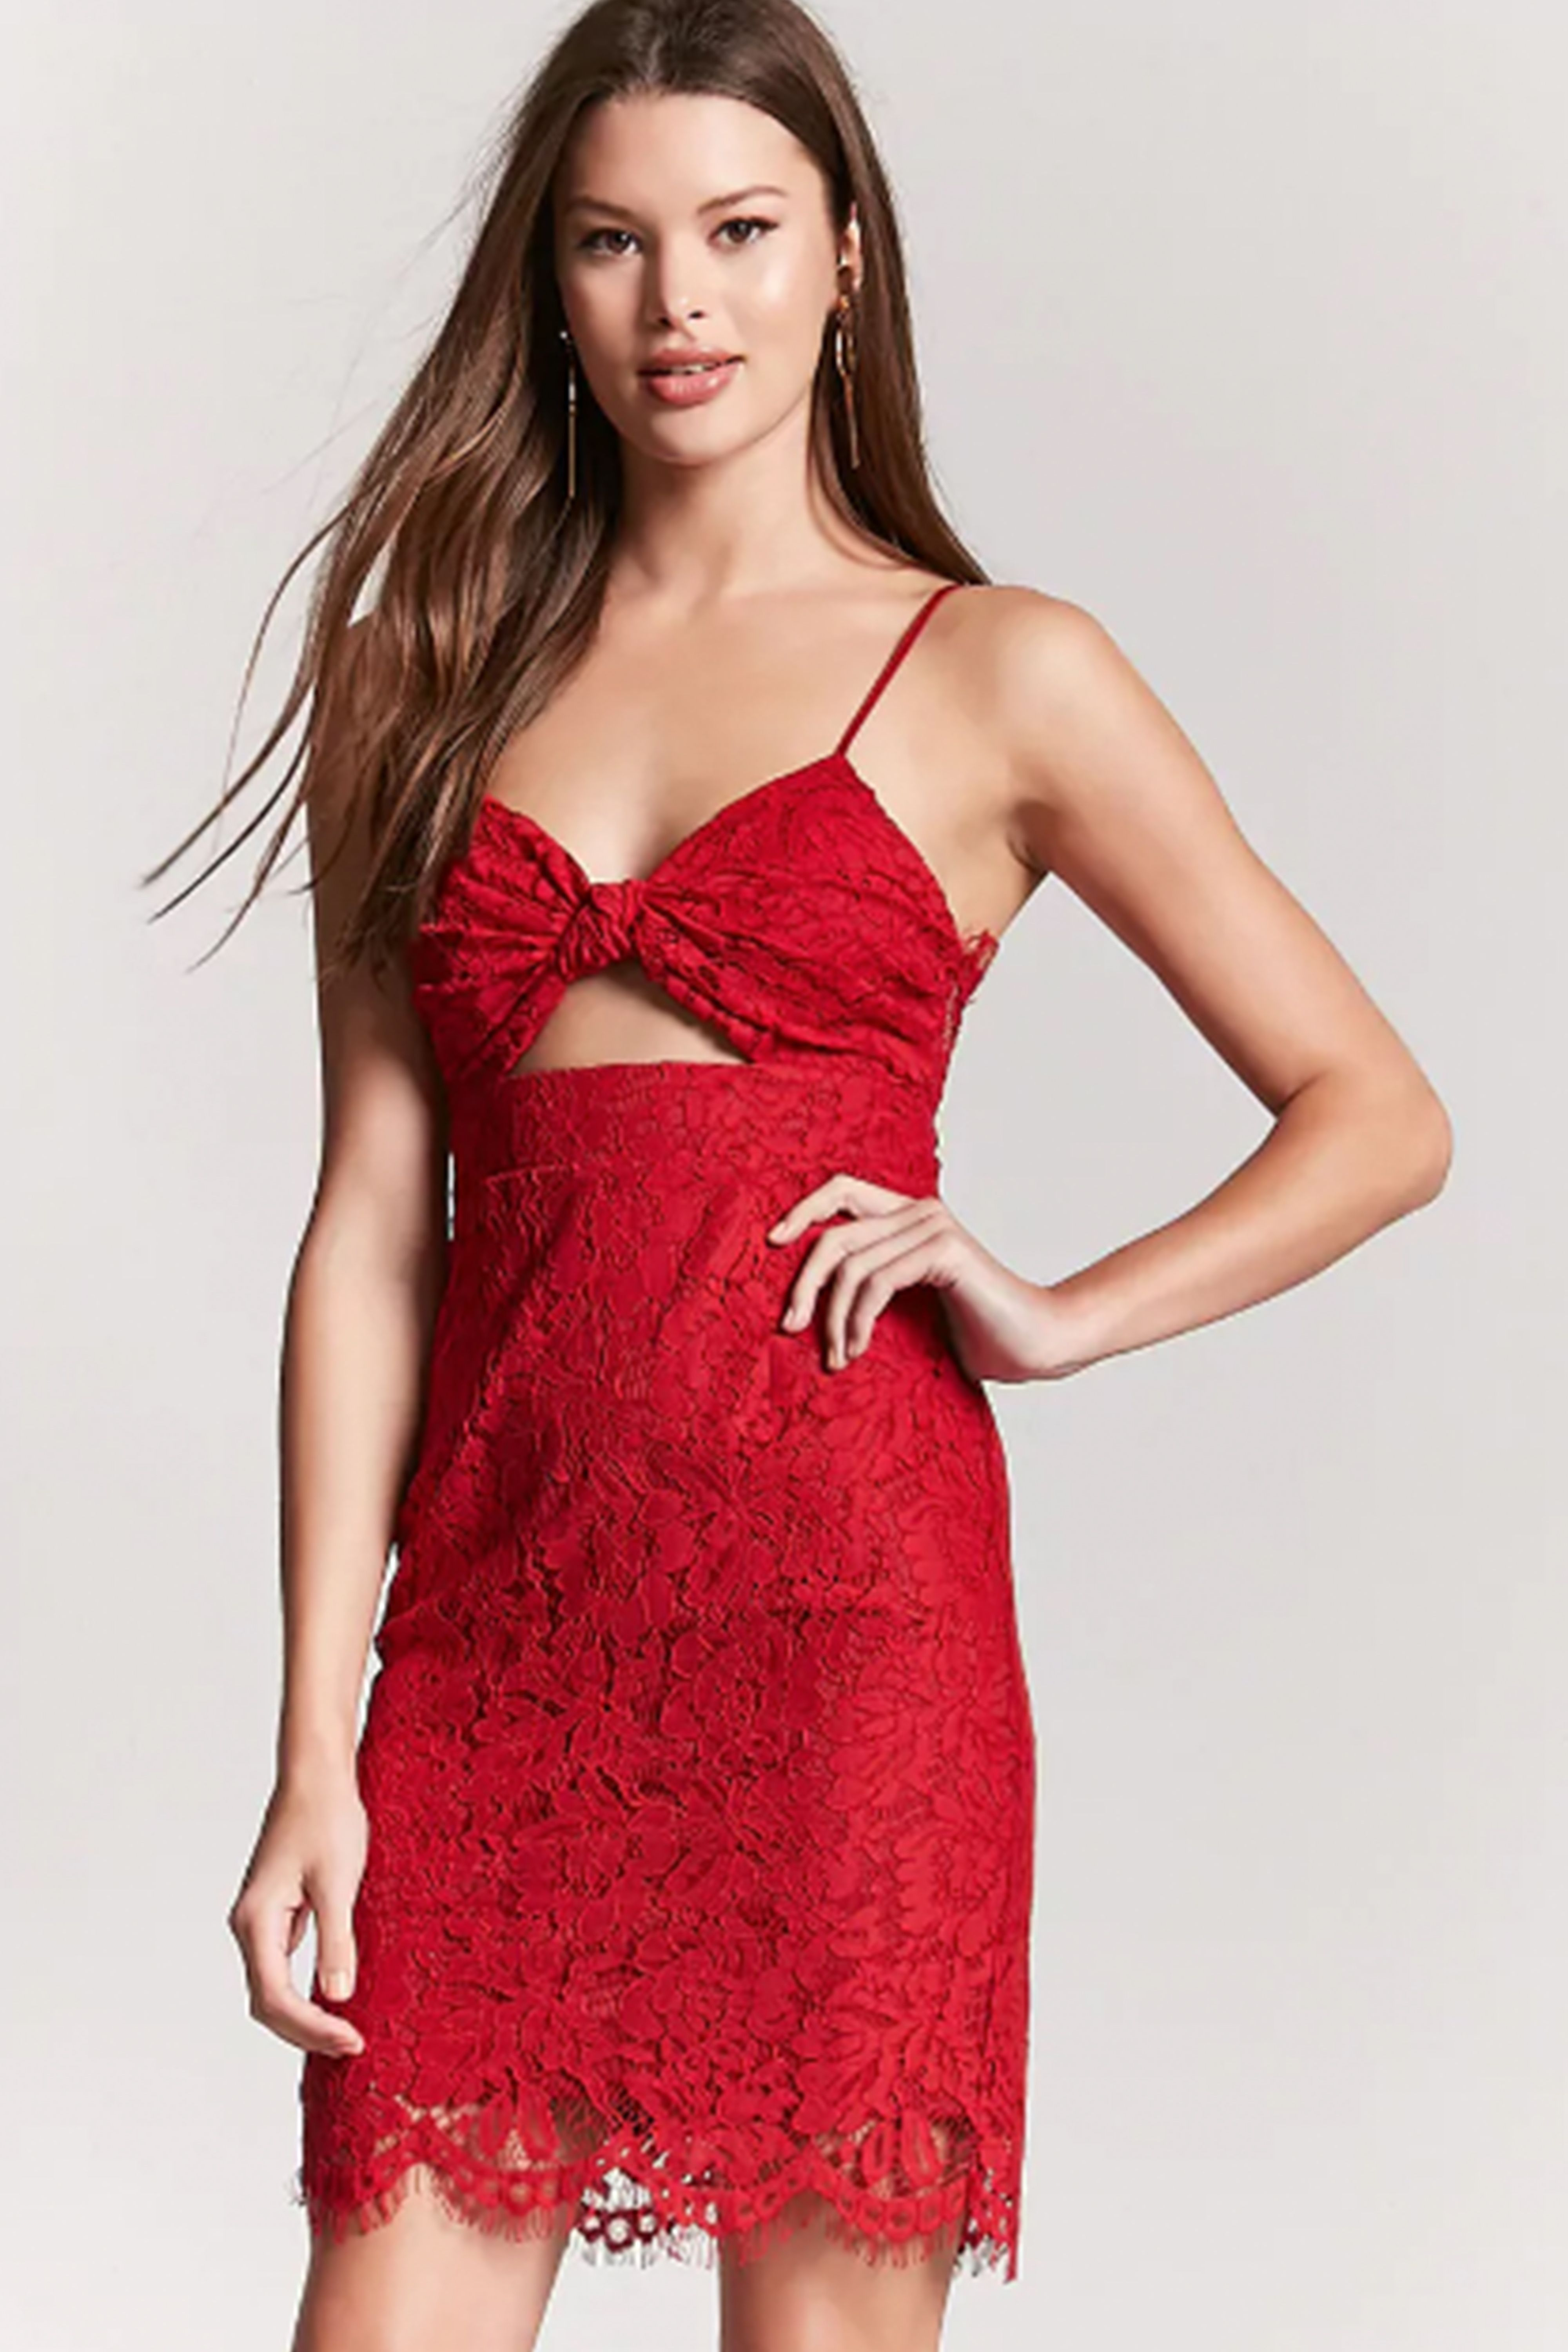 29 Best Red Prom Dresses for 2018 - Bold Red Formal Dresses for Prom